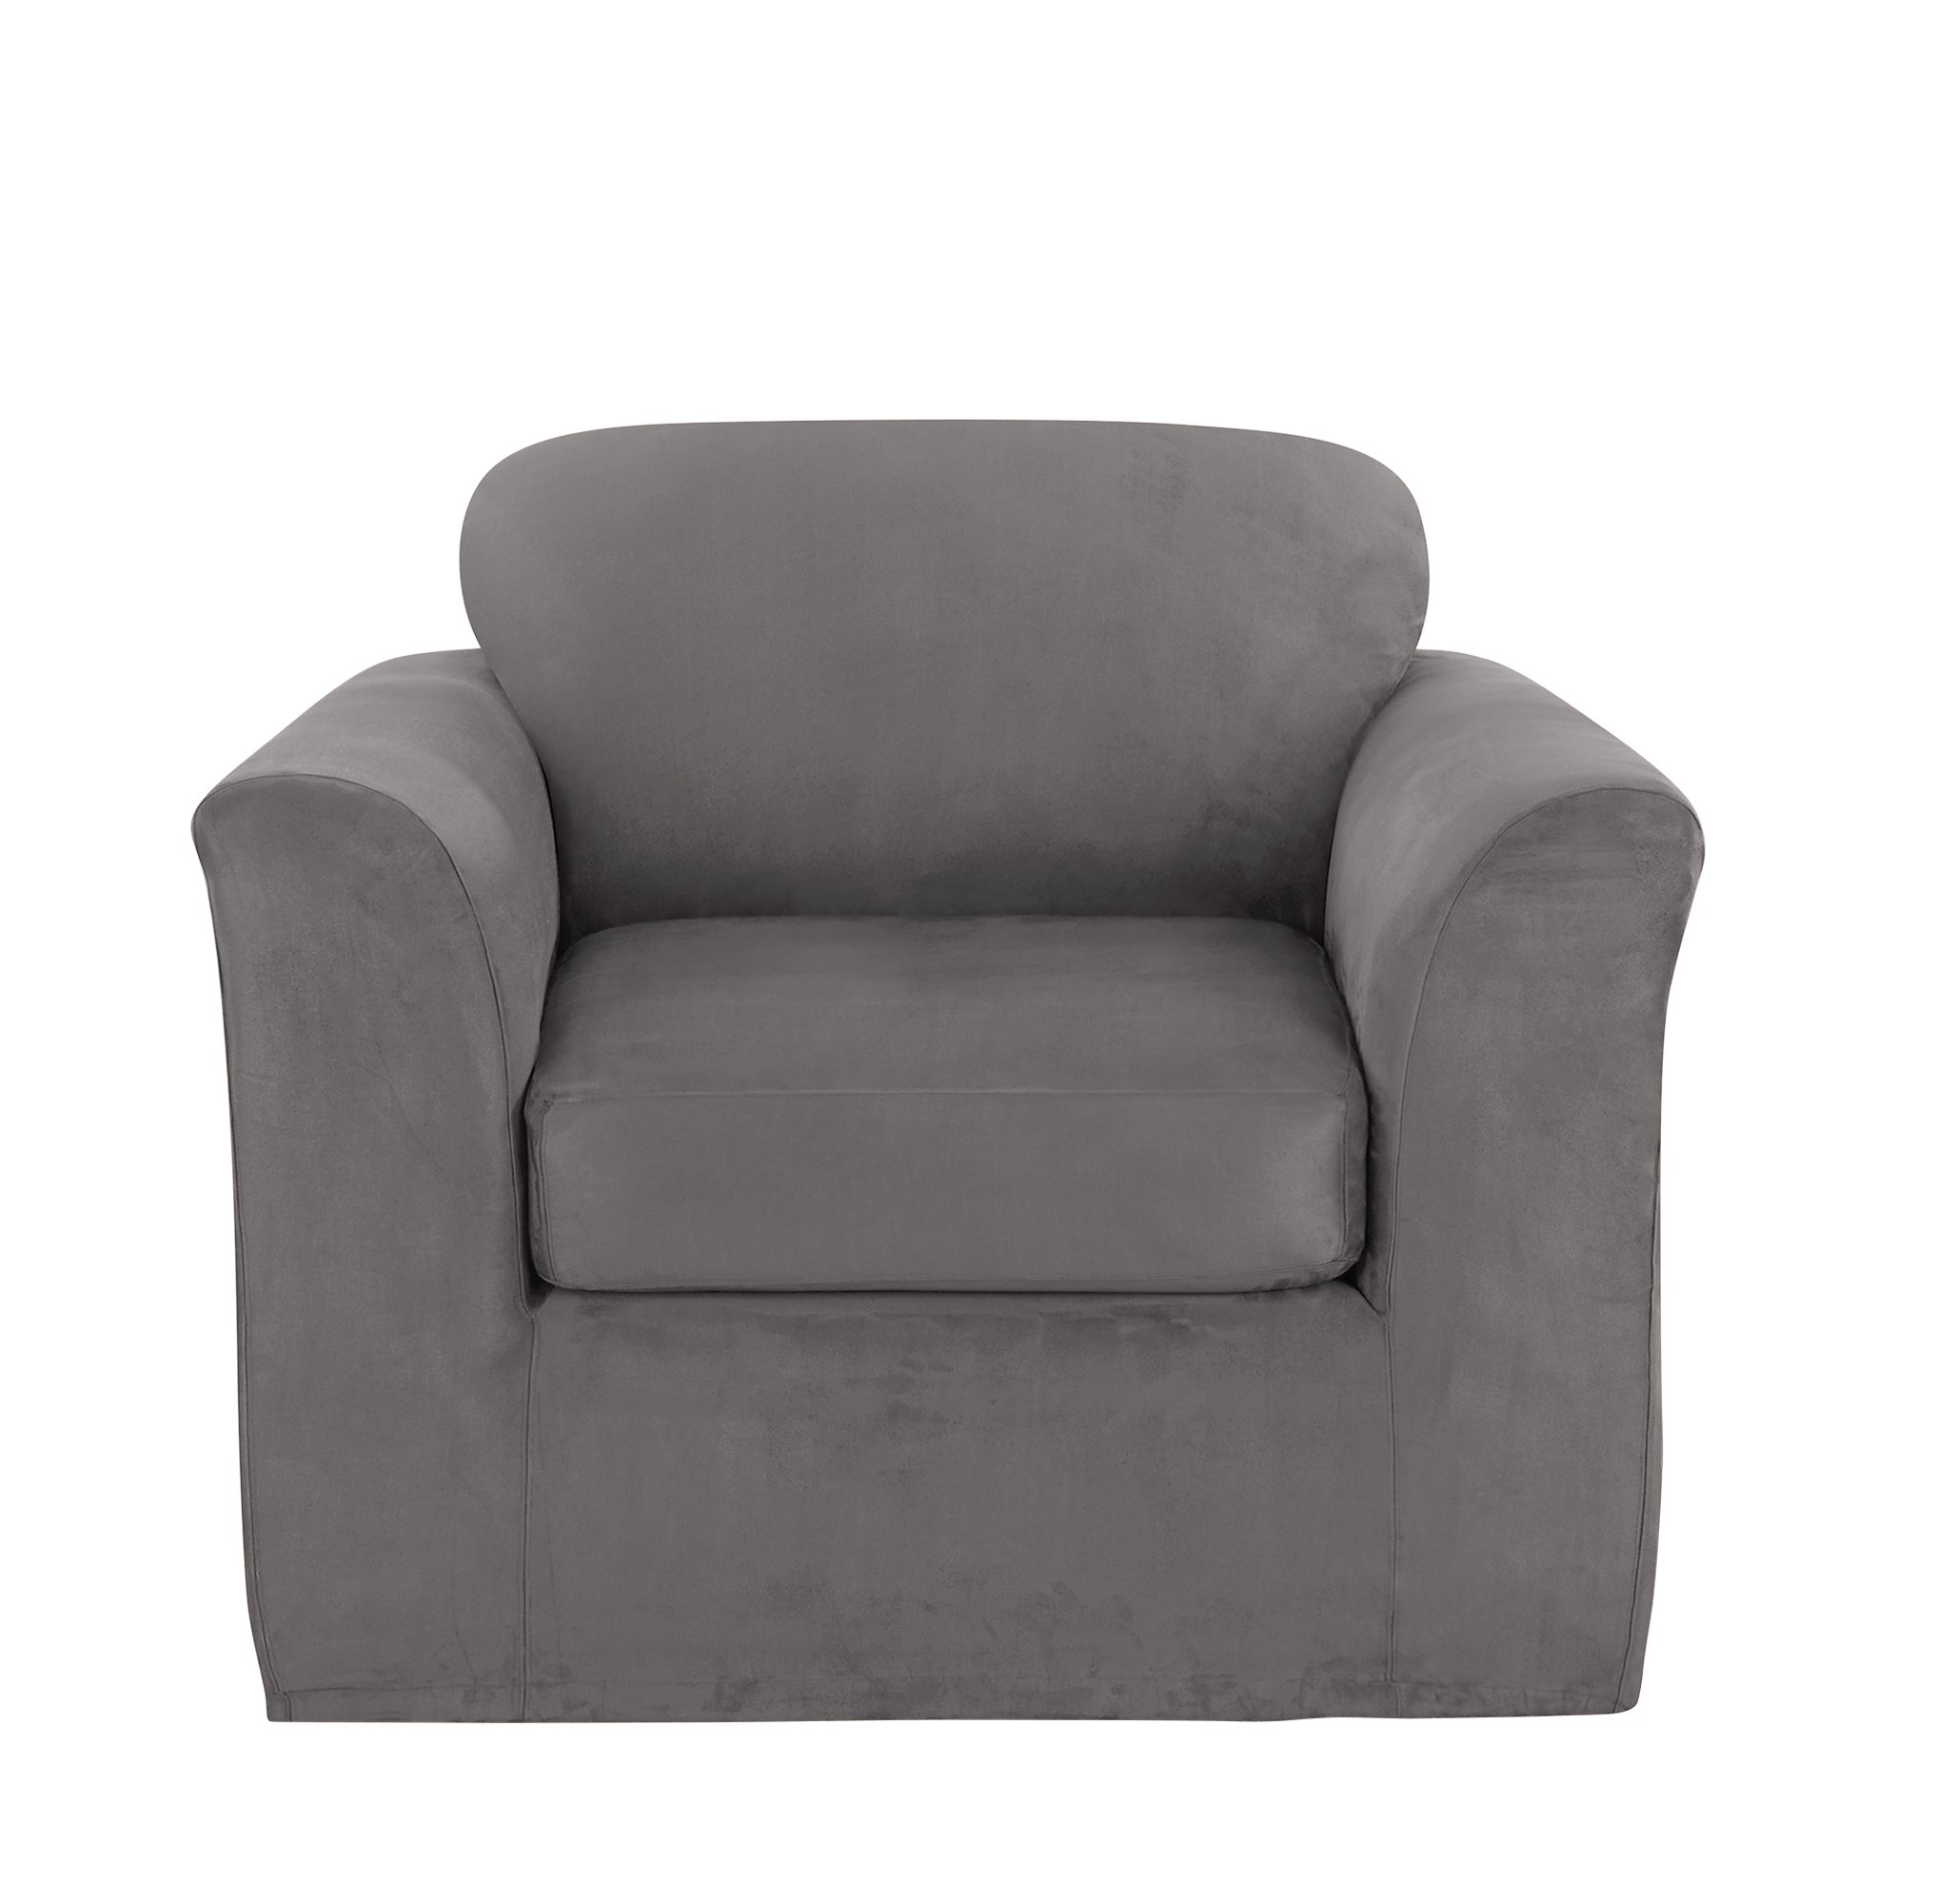 Sure Fit Ultimate Heavyweight Stretch Suede Chair Slipcover, Box Cushion - Slate Gray